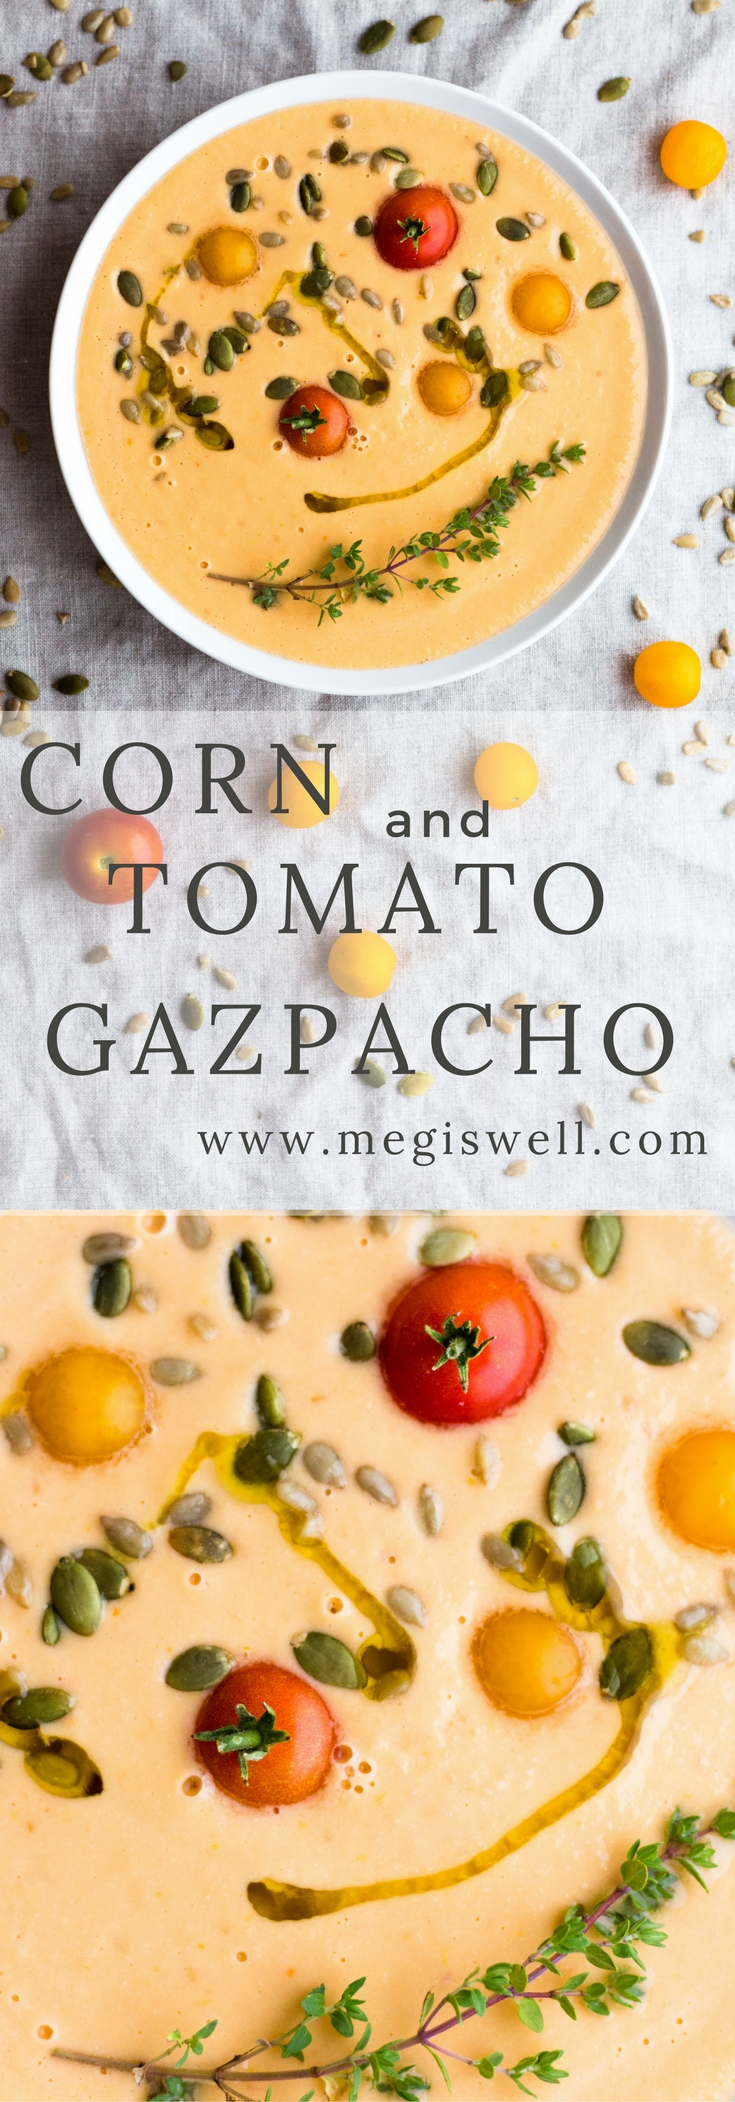 This easy Corn and Tomato Gazpacho is a healthy raw soup perfect for a light dinner on hot summer days. | www.megiswell.com